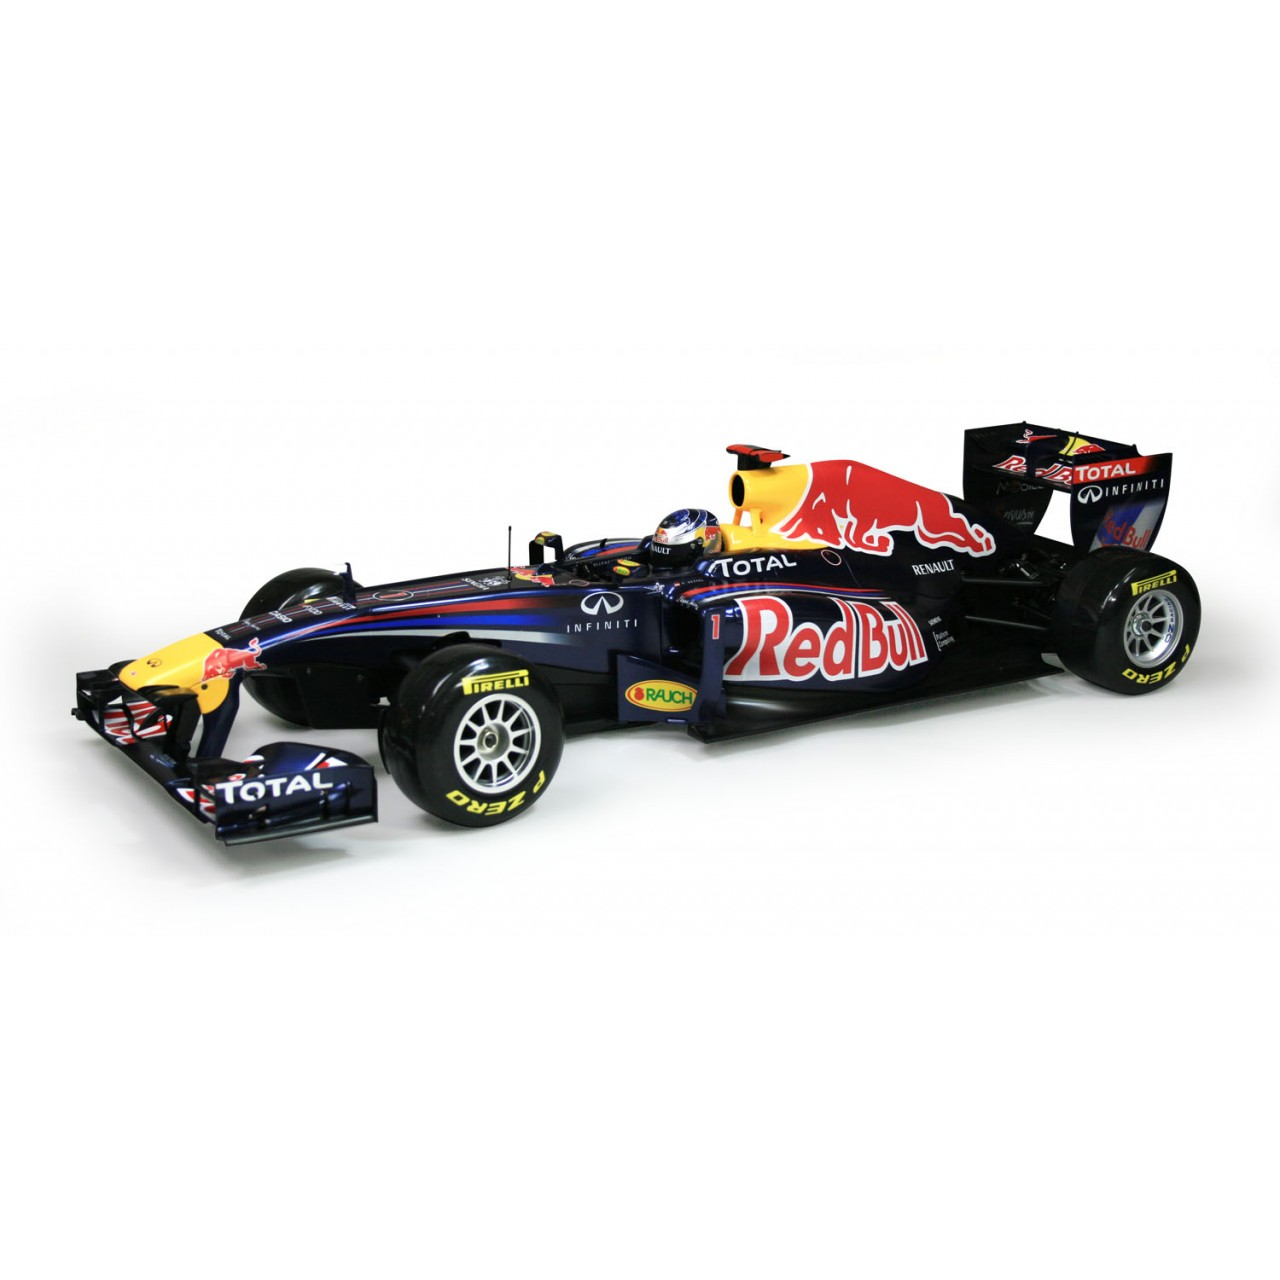 Red Bull Racing Rb7 Model Race Car Full Kit Modelspace